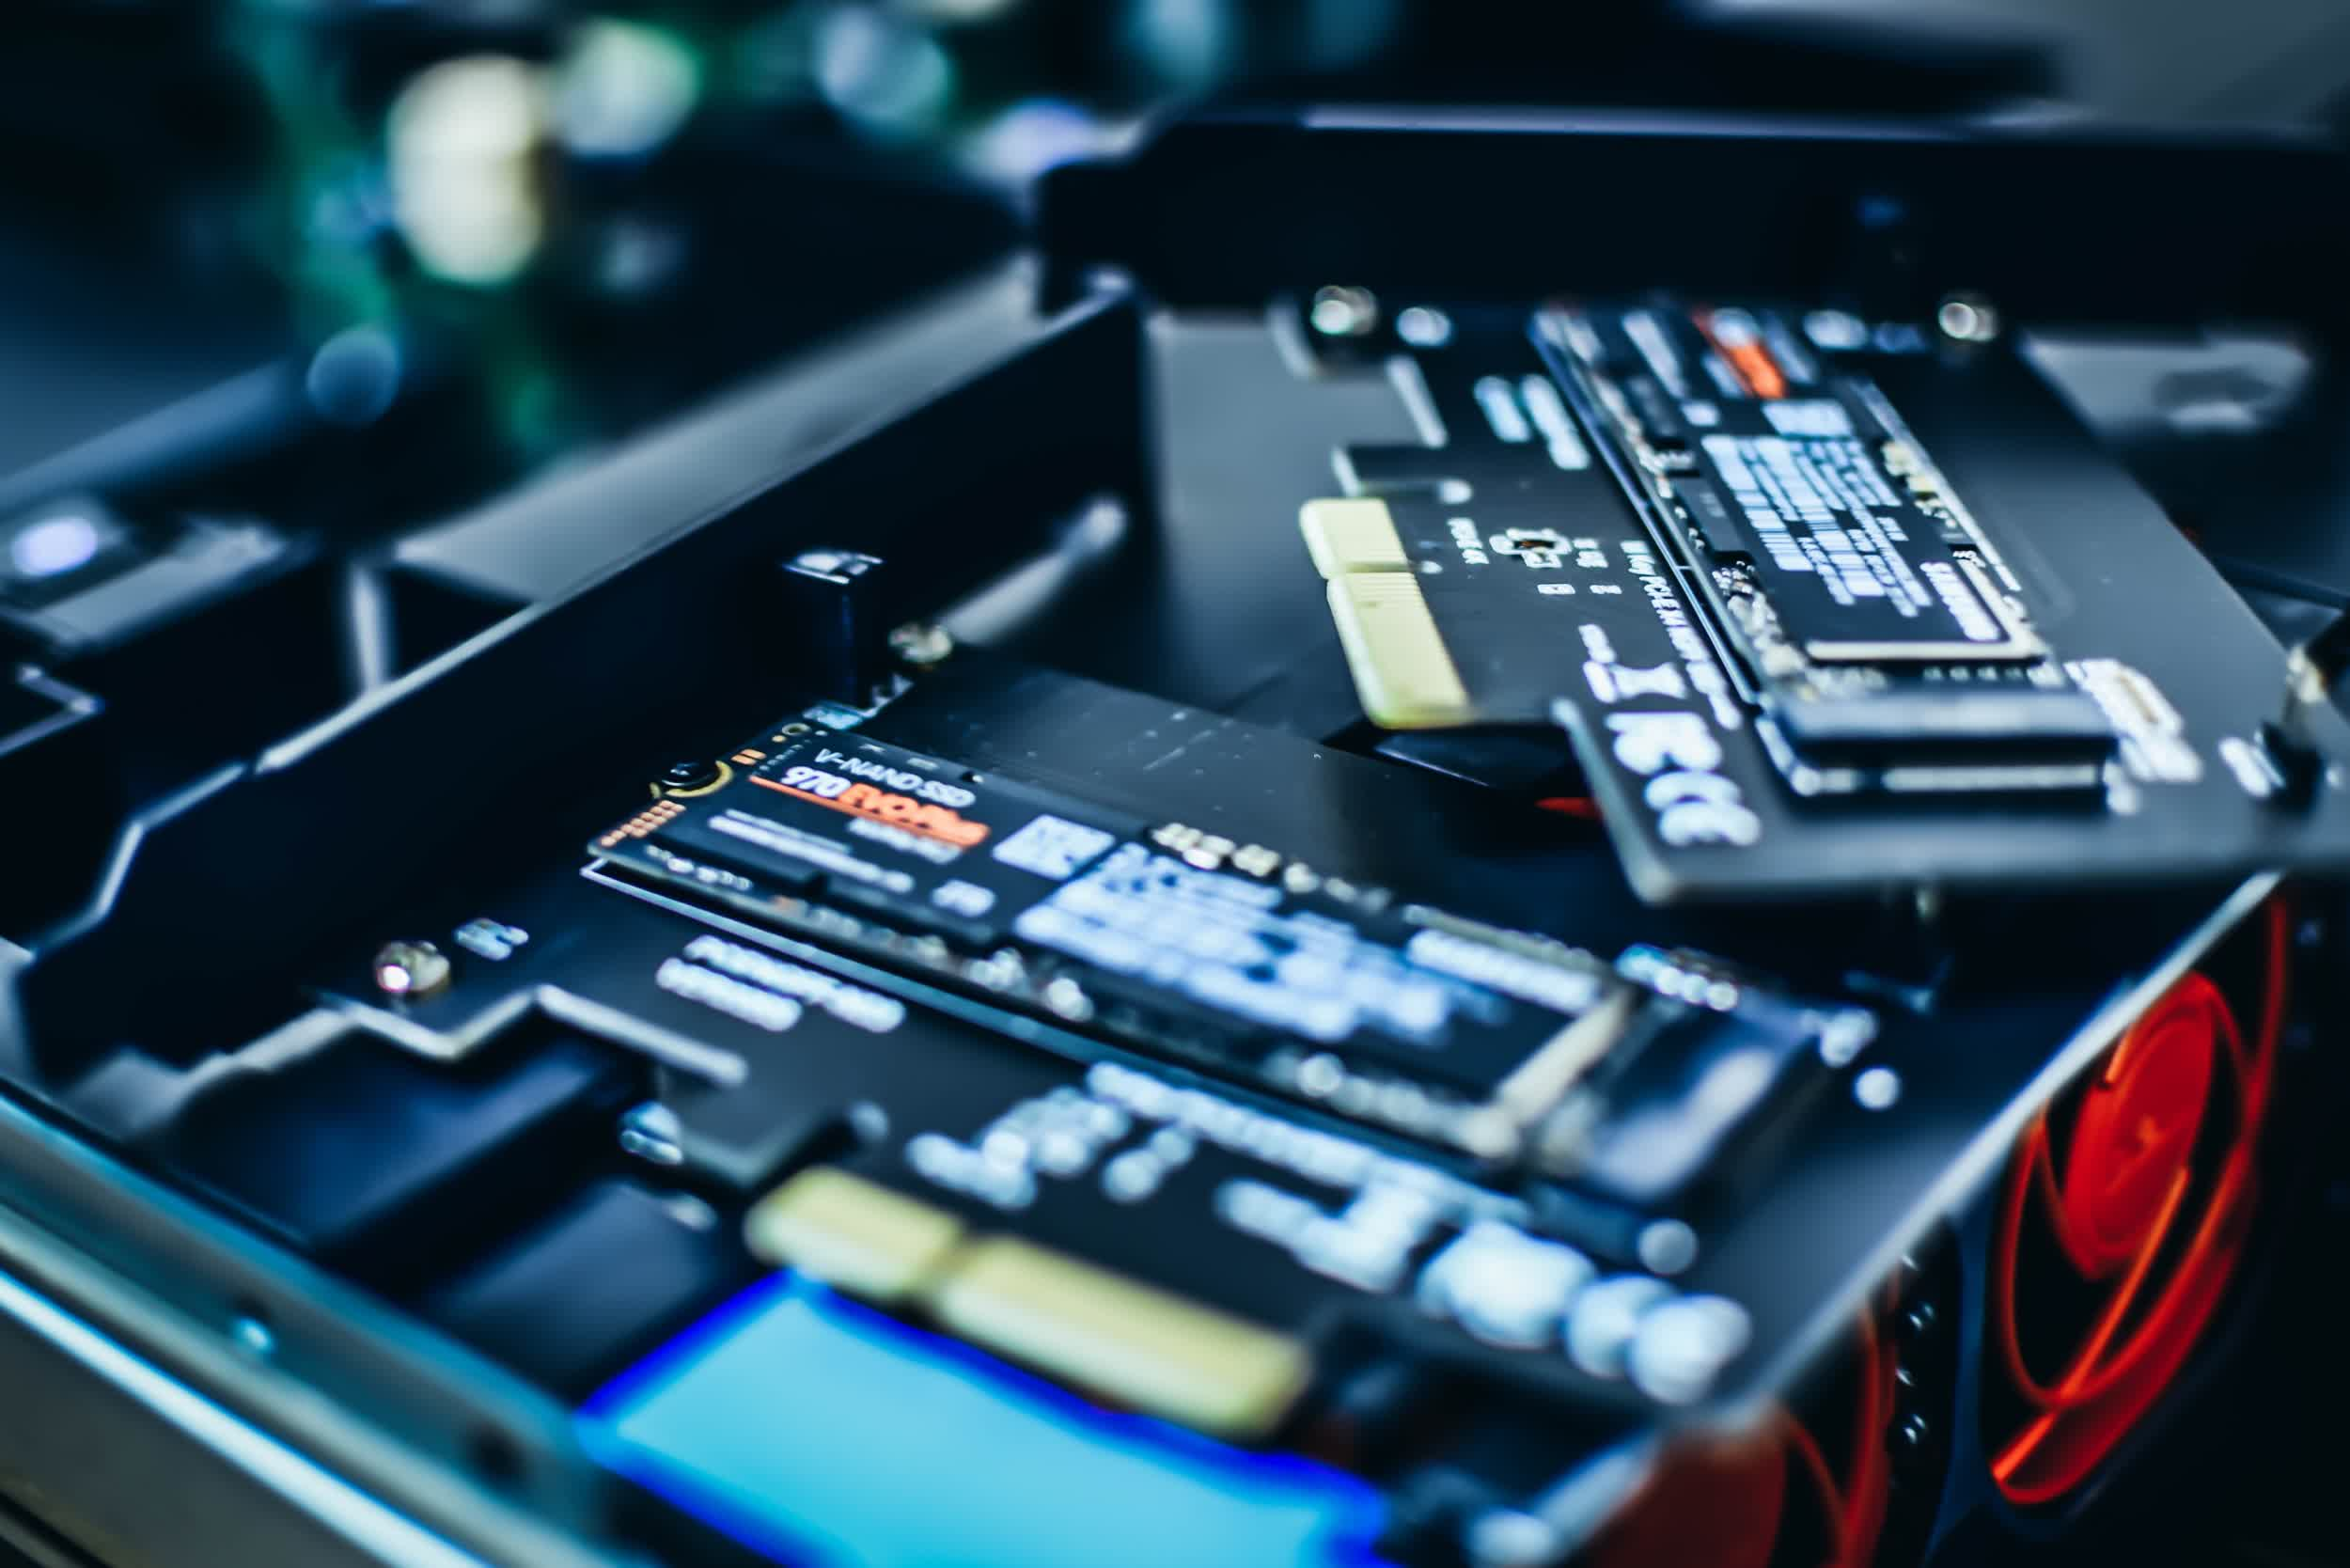 Samsung led the SSD market by a wide margin in Q2 2021